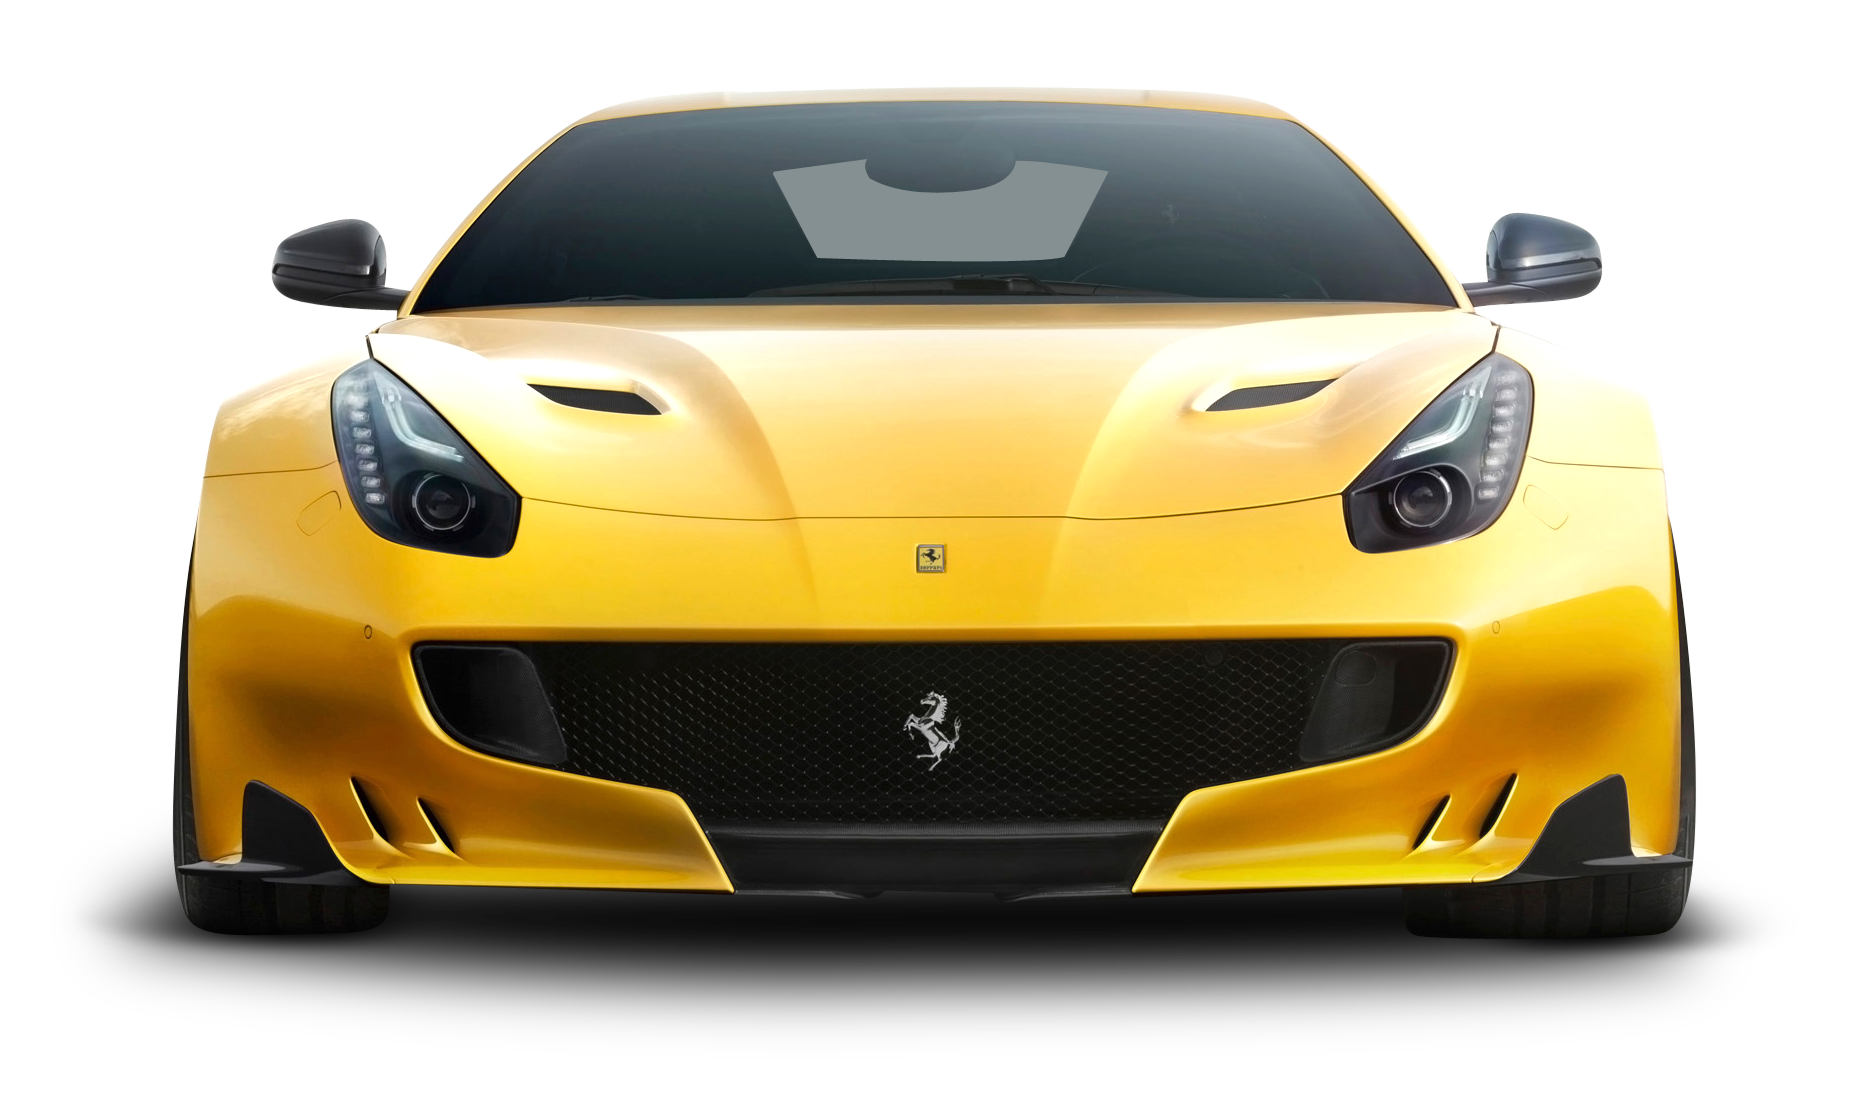 Download Yellow Ferrari F12tdf Car Front Png Image For Free Car Front Ferrari Car